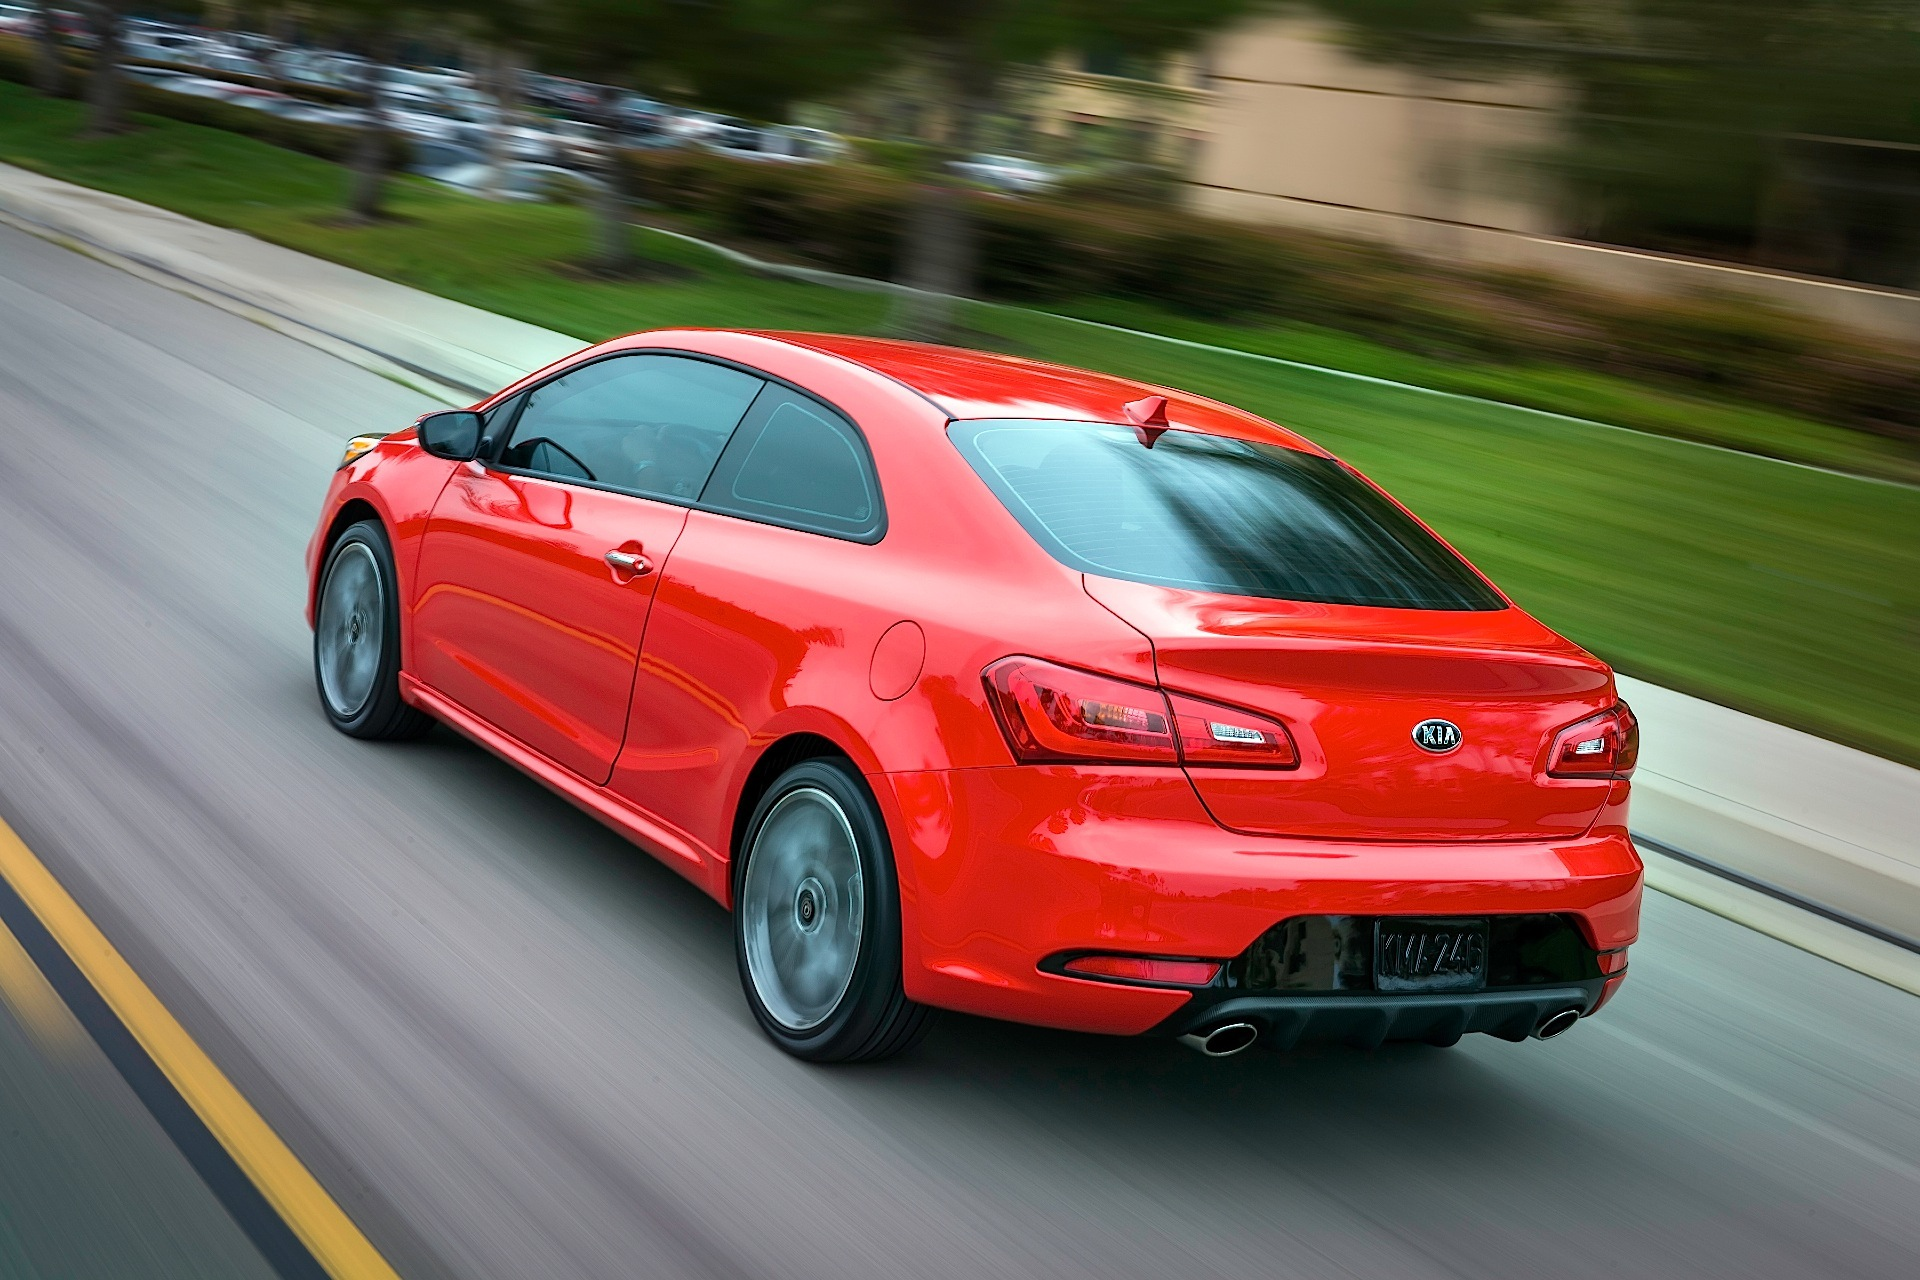 kia forte koup specs photos 2013 2014 2015 2016 2017 2018 autoevolution. Black Bedroom Furniture Sets. Home Design Ideas